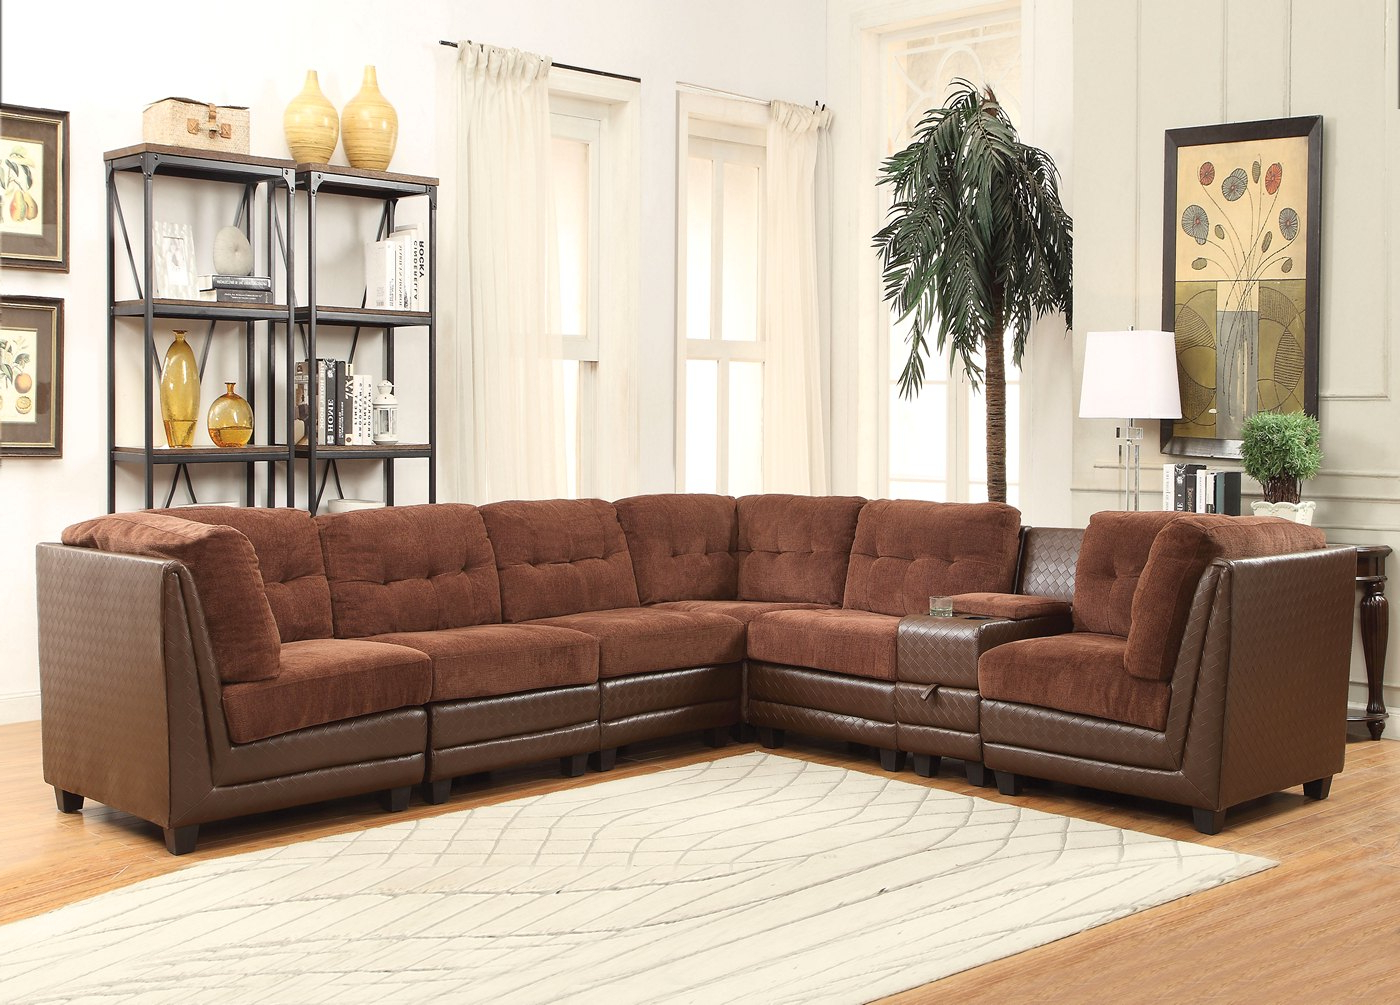 Most Popular Valen 7 Pc Casual Modular Sectional Sofa In Brown Chenille Intended For Paul Modular Sectional Sofas Blue (View 15 of 20)